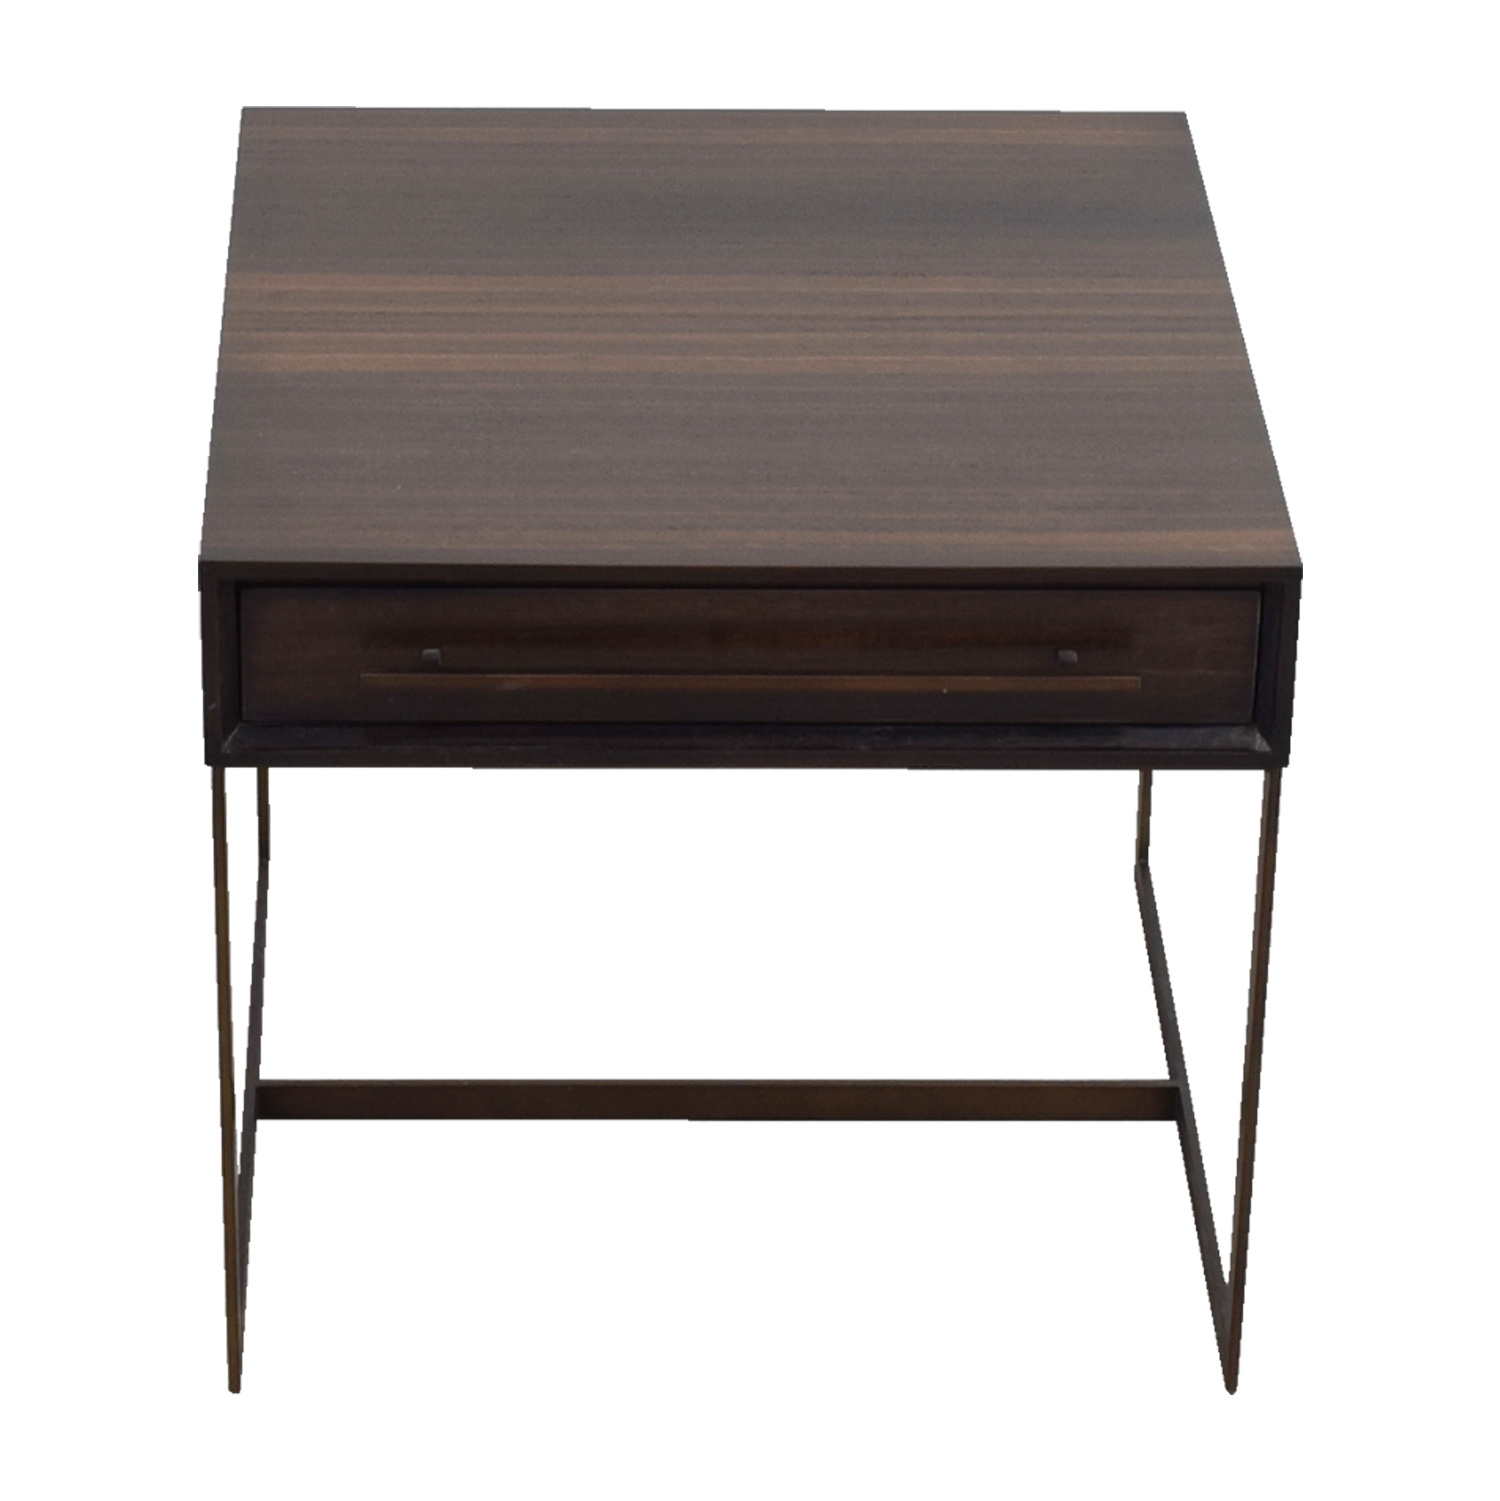 shop Mitchell Gold + Bob Williams Allure Drawer Side Table Mitchell Gold + Bob Williams